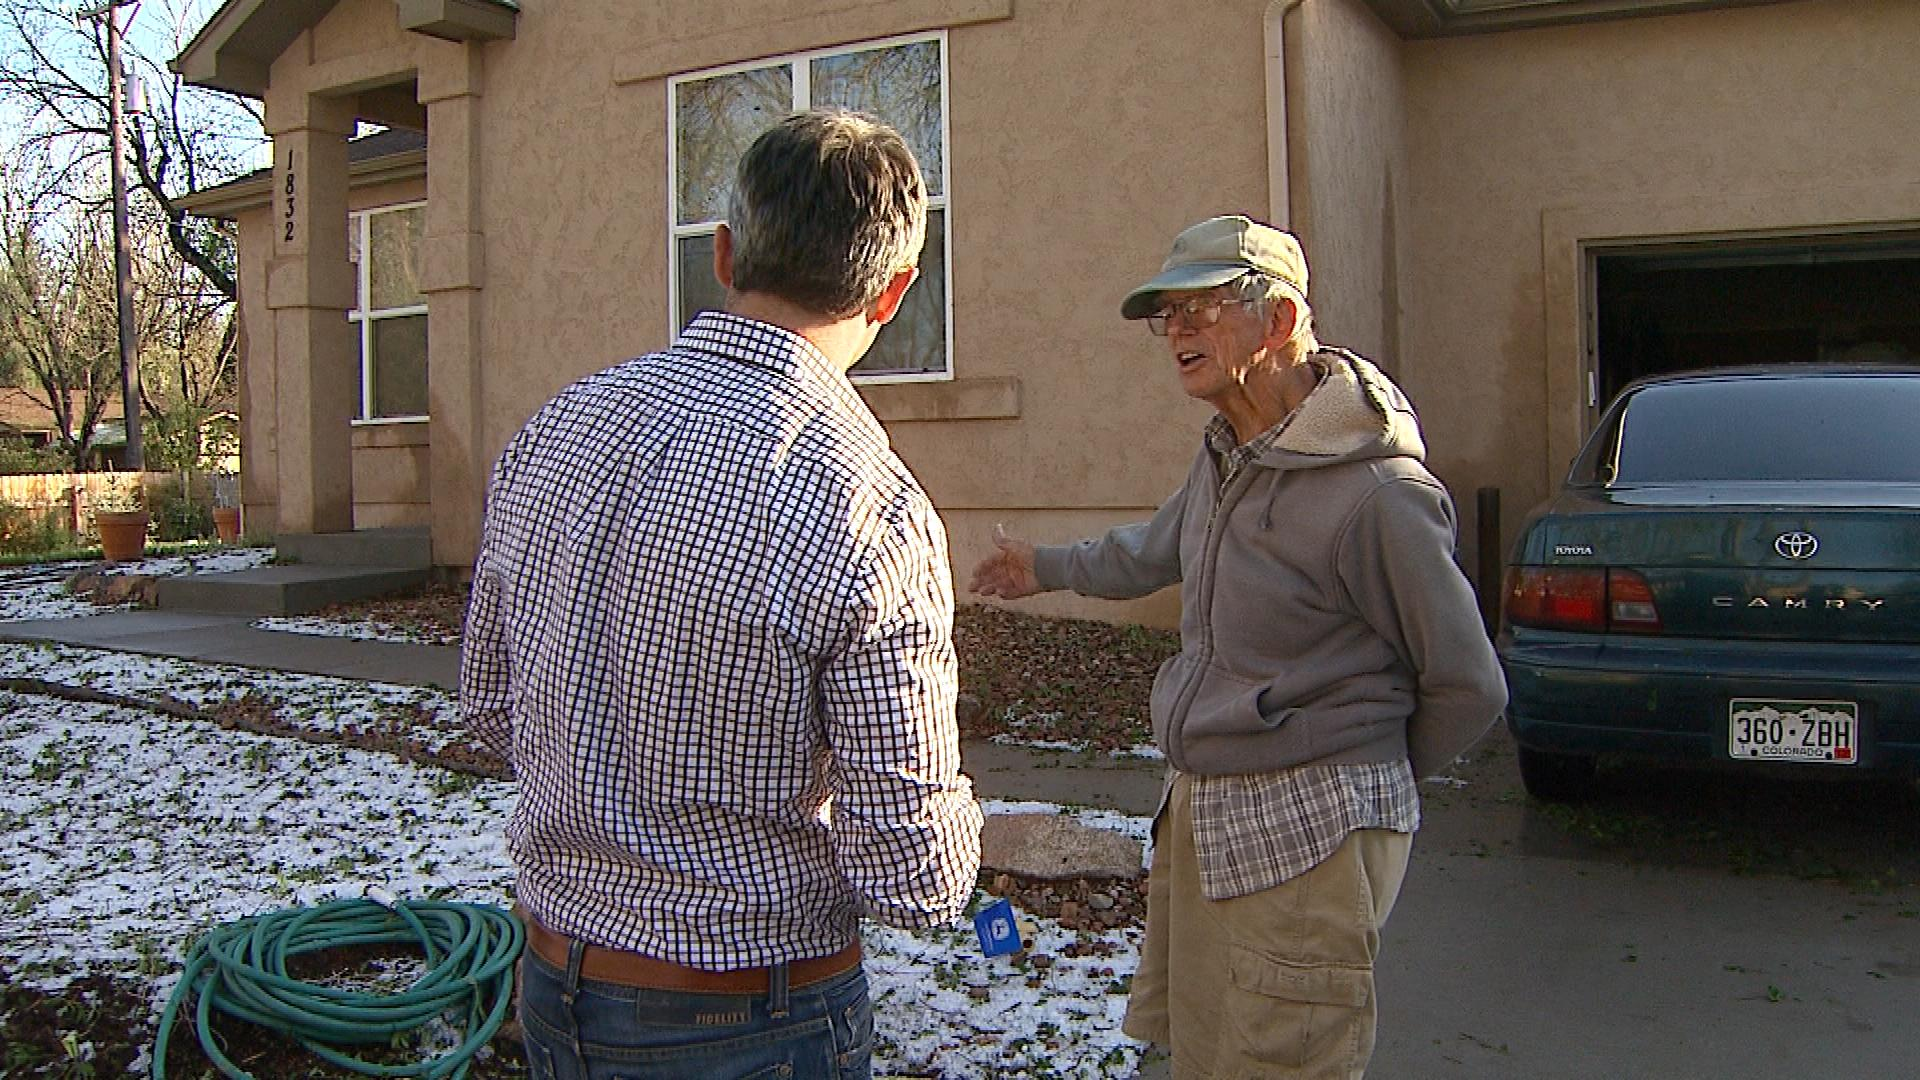 Robert Peters shows unmelted hail on his lawn. (credit: CBS)